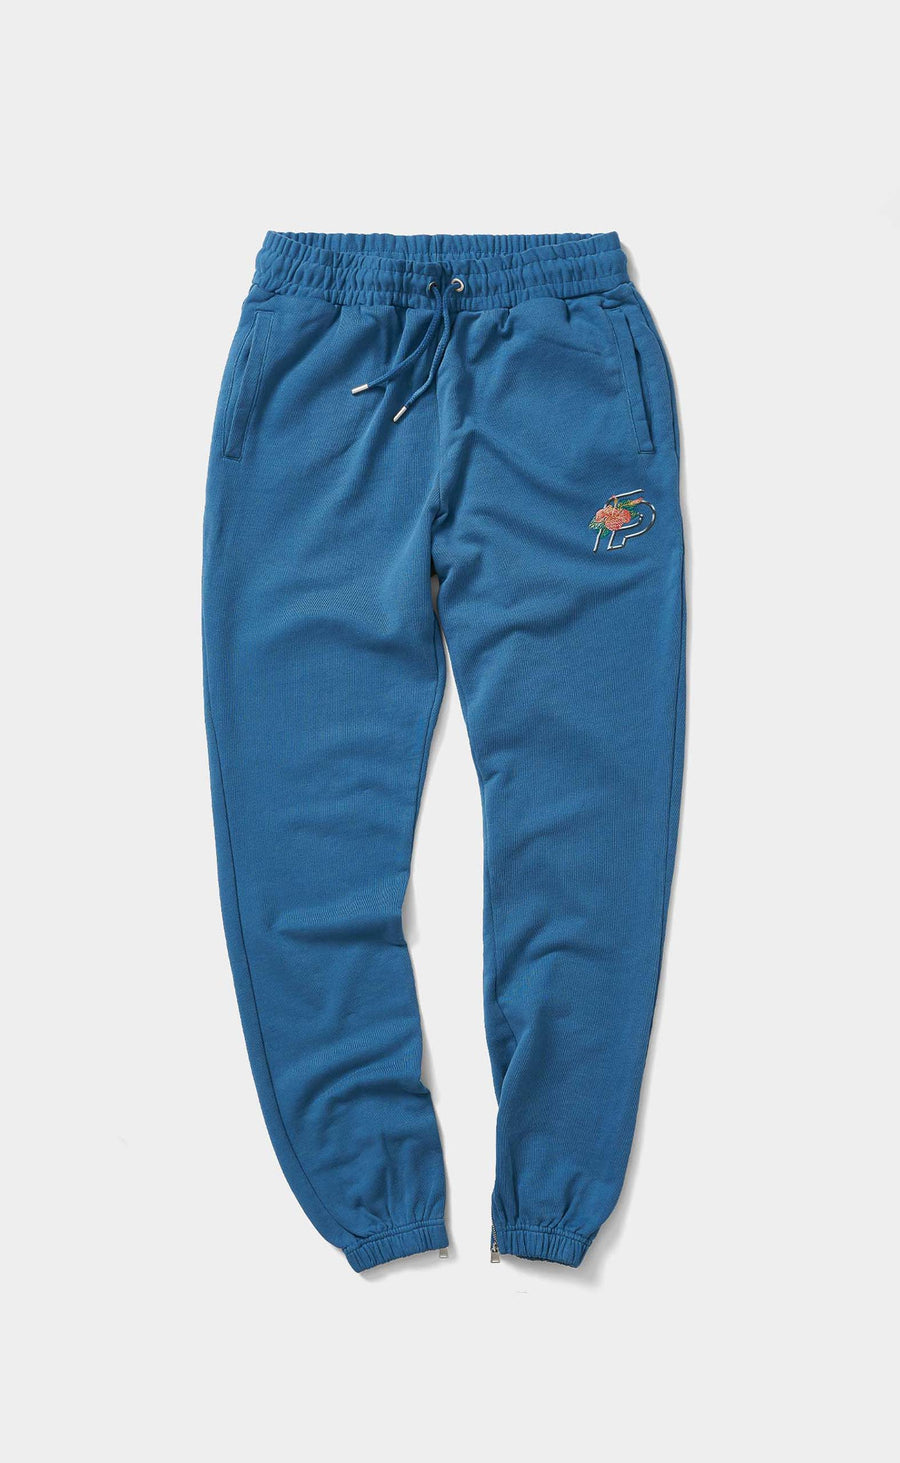 Graphic Sweatpants FP Flower Saxony Blue - men